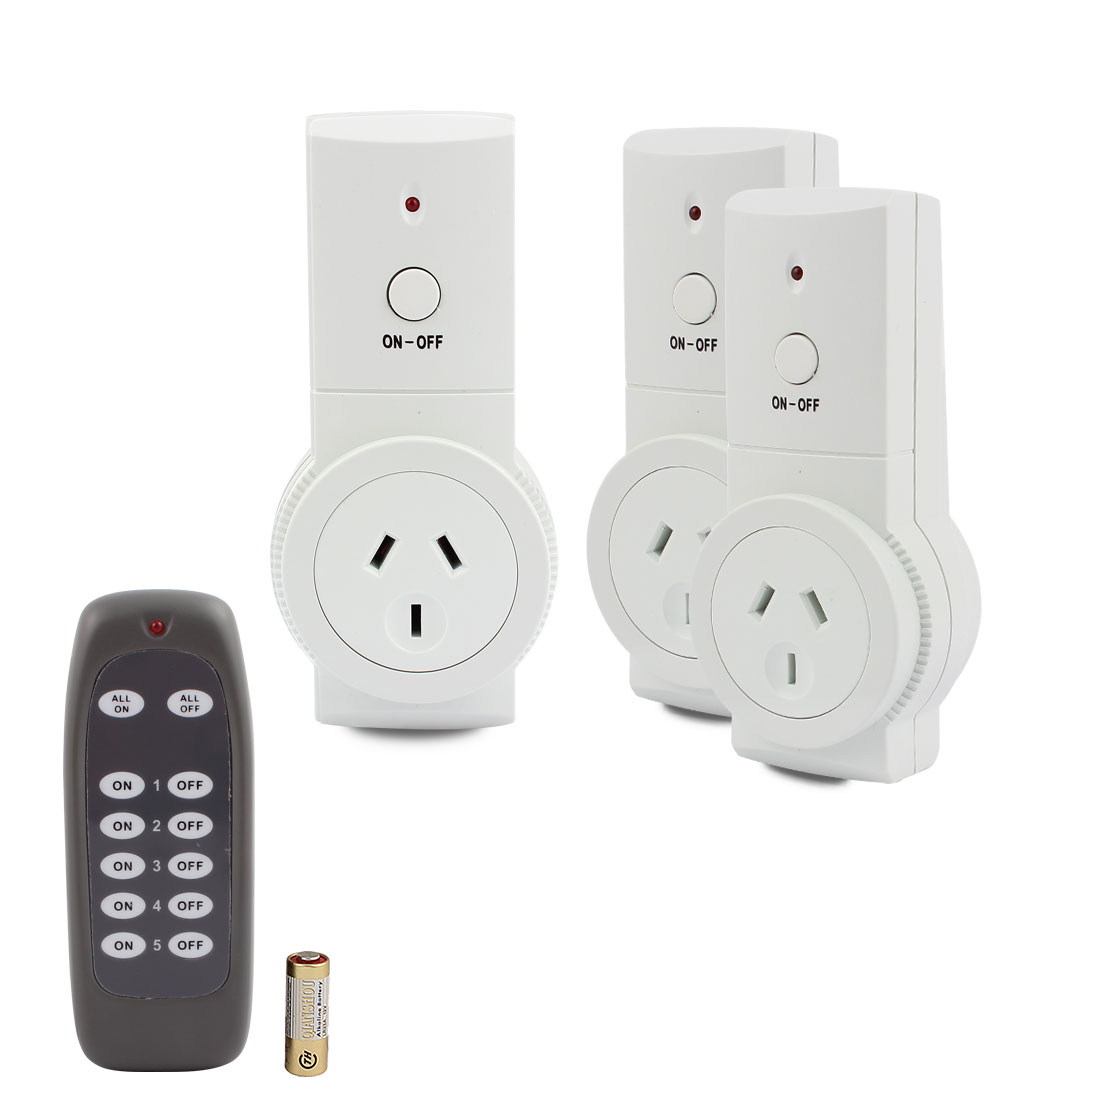 2 Pcs Wireless Power AU Sockets Switches Outlets AU Plug 240VAC Home Mains w 1 Remote Control